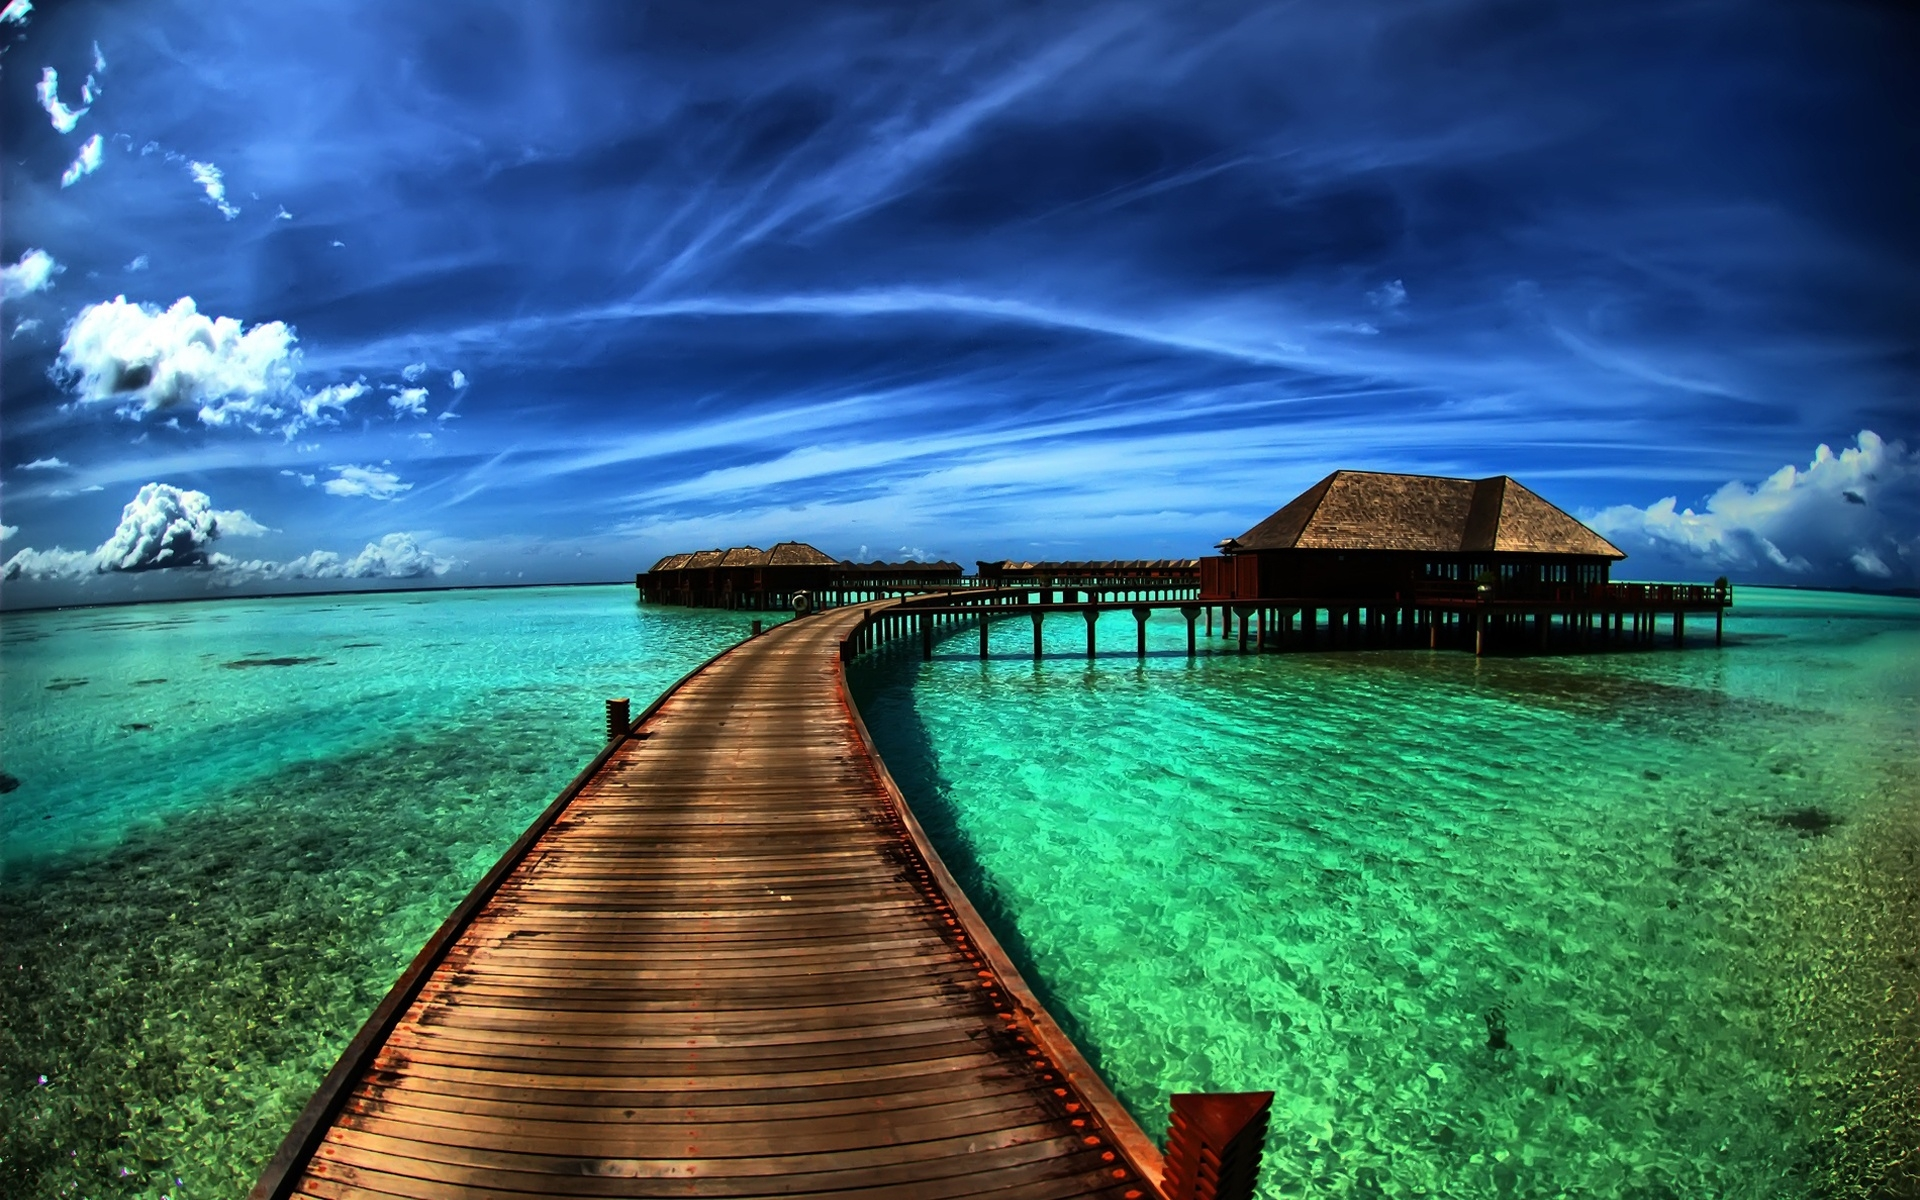 Amazing Sea Resort for 1920 x 1200 widescreen resolution